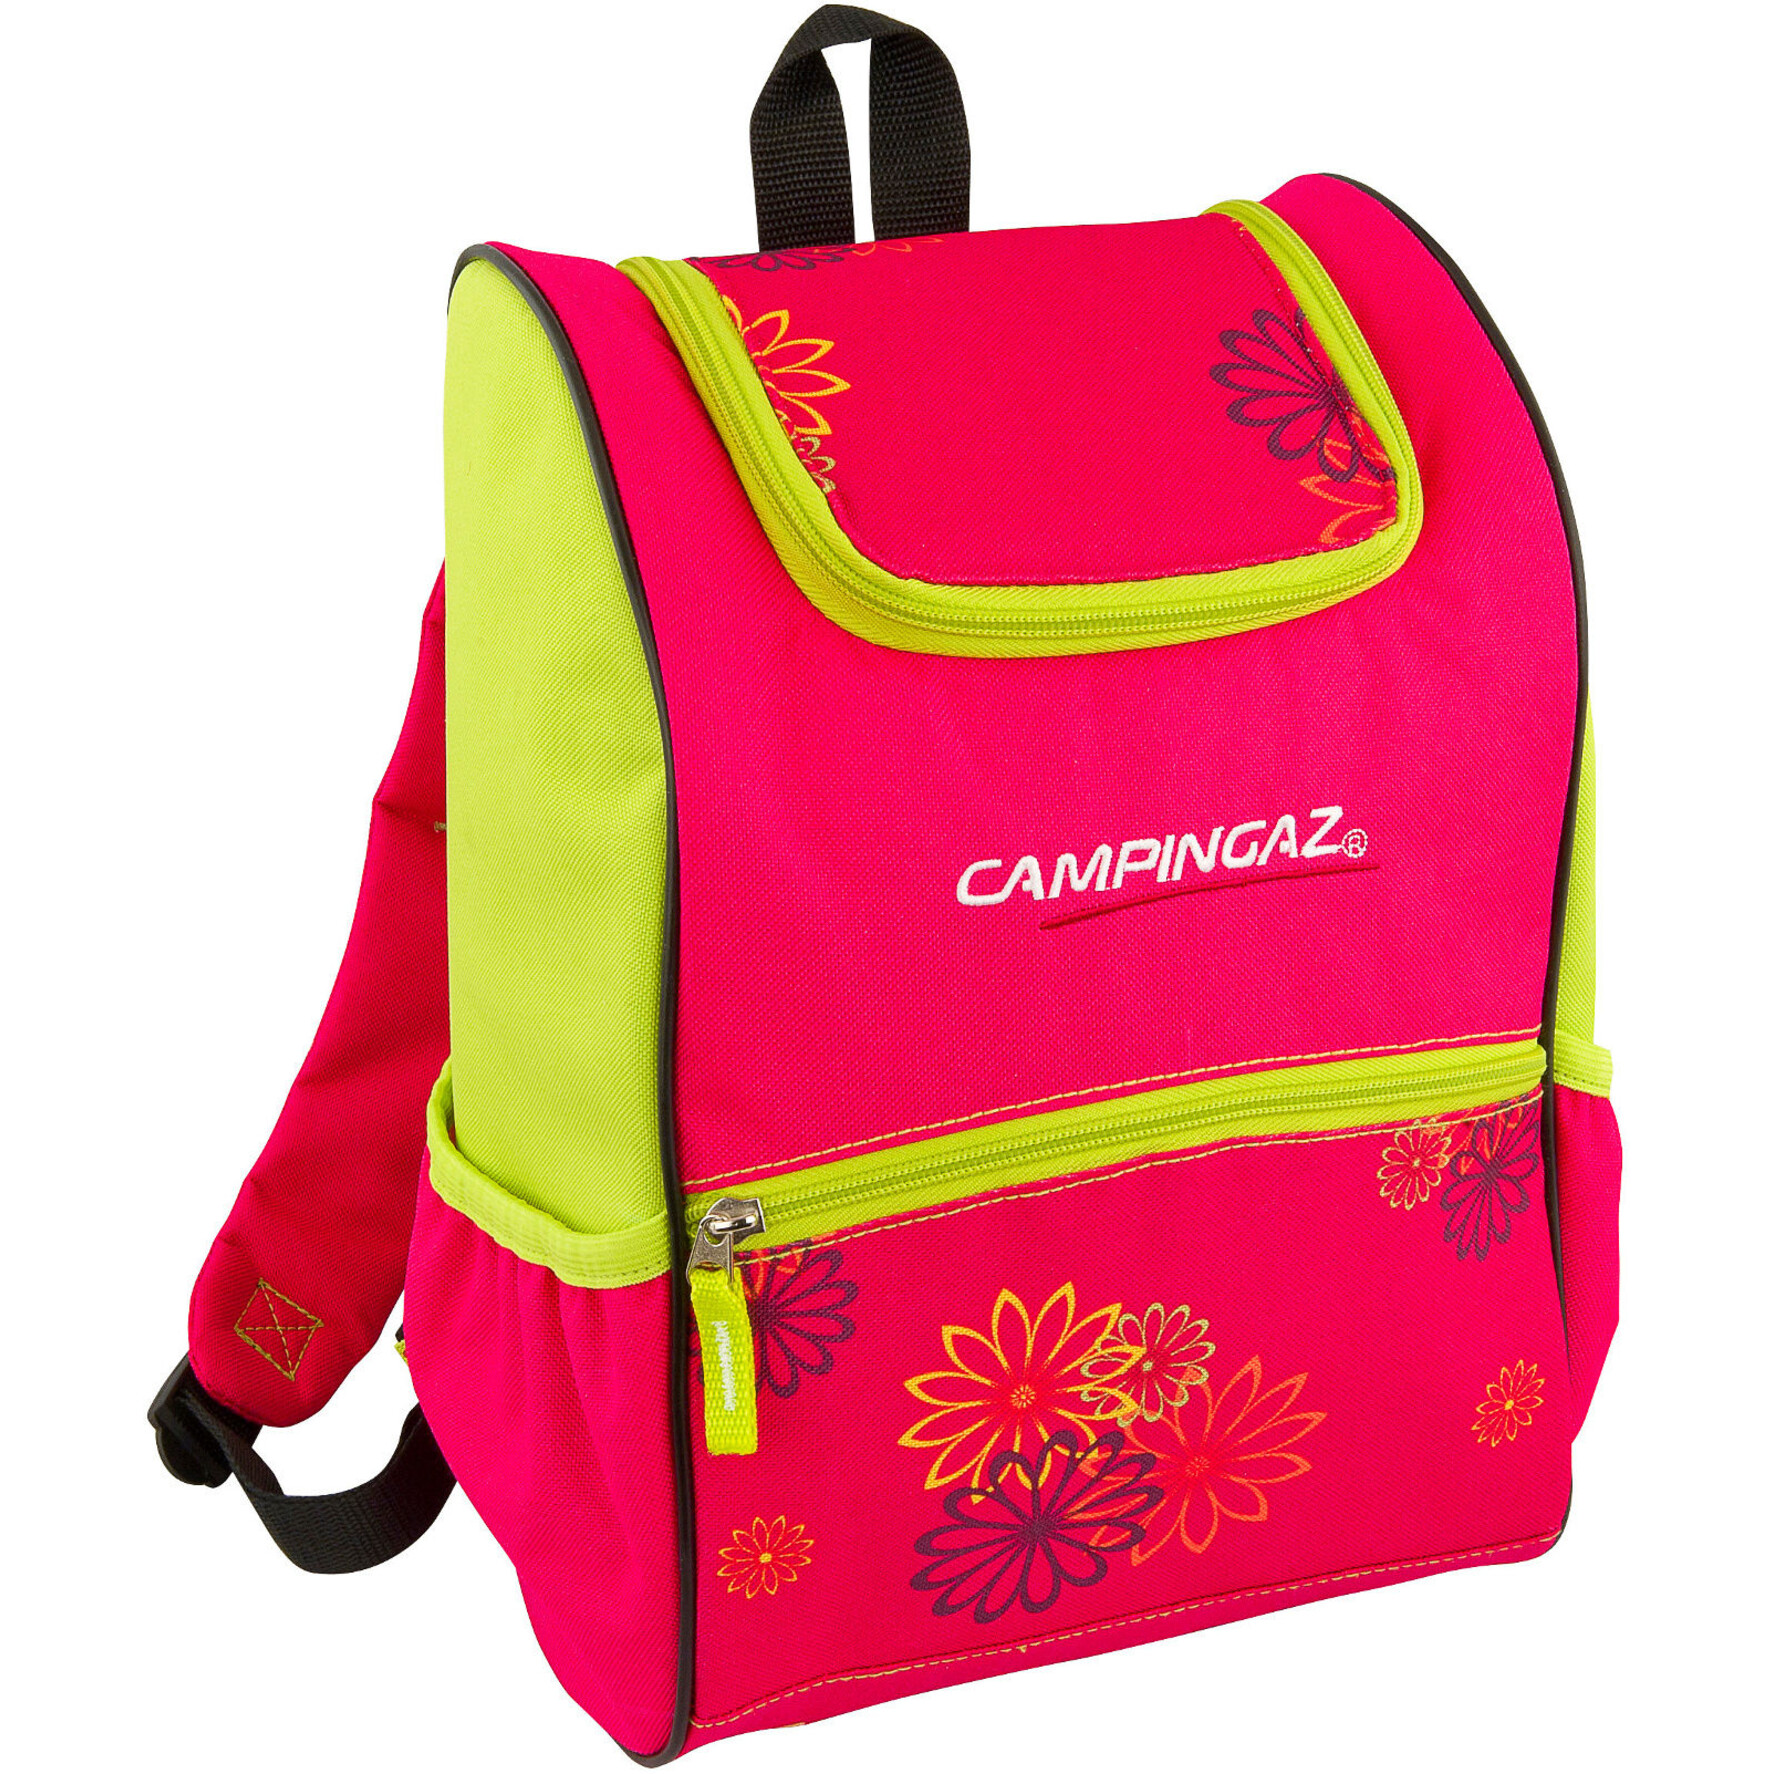 campingaz bacpac cool bag 9l pink red at. Black Bedroom Furniture Sets. Home Design Ideas